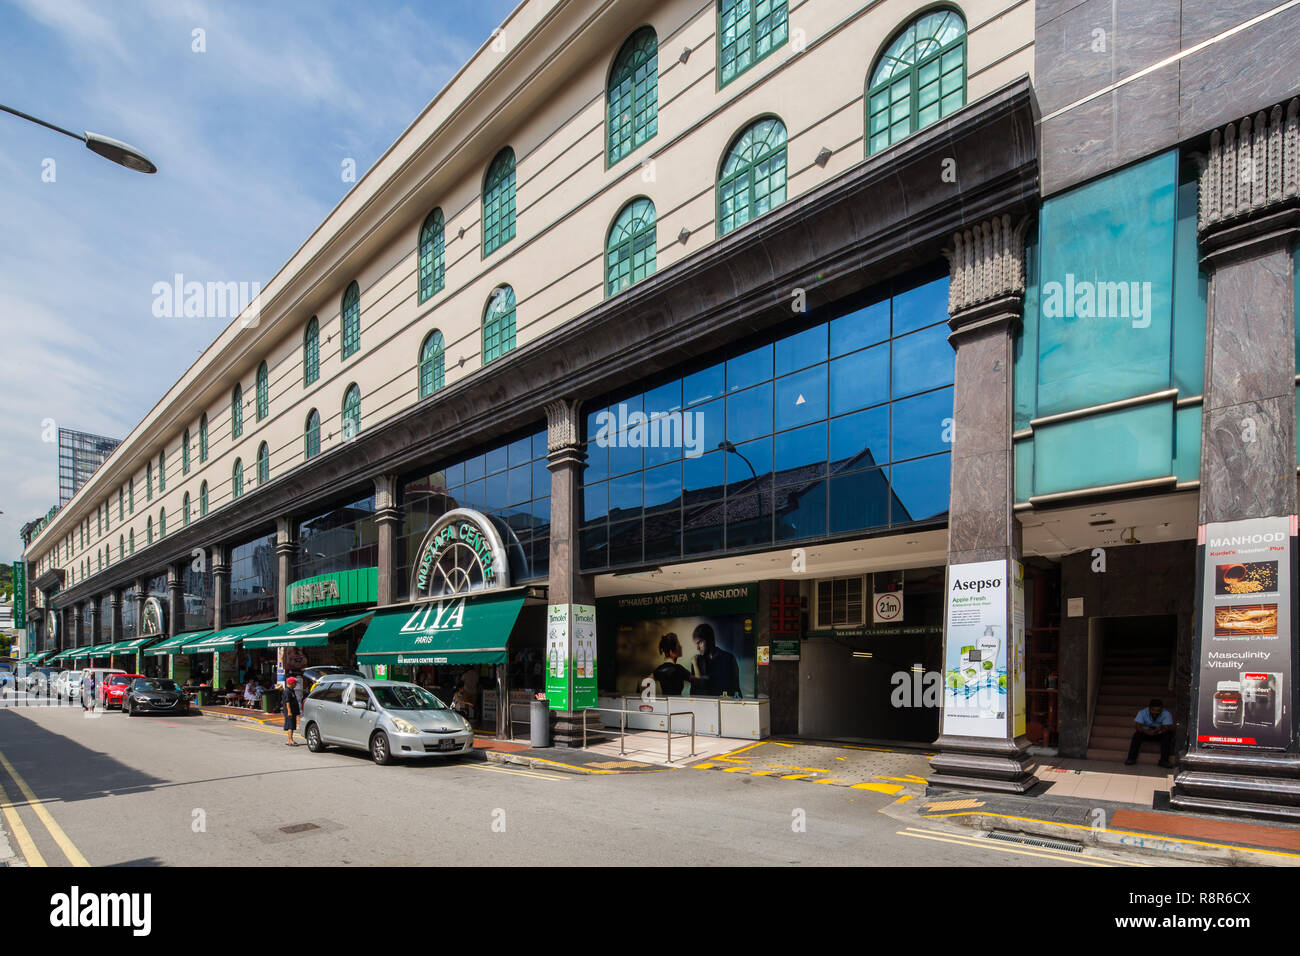 fb416246c2b00 Mustafa Centre is one of Singapore s 24-hour shopping malls on Syed Alwi  Road in